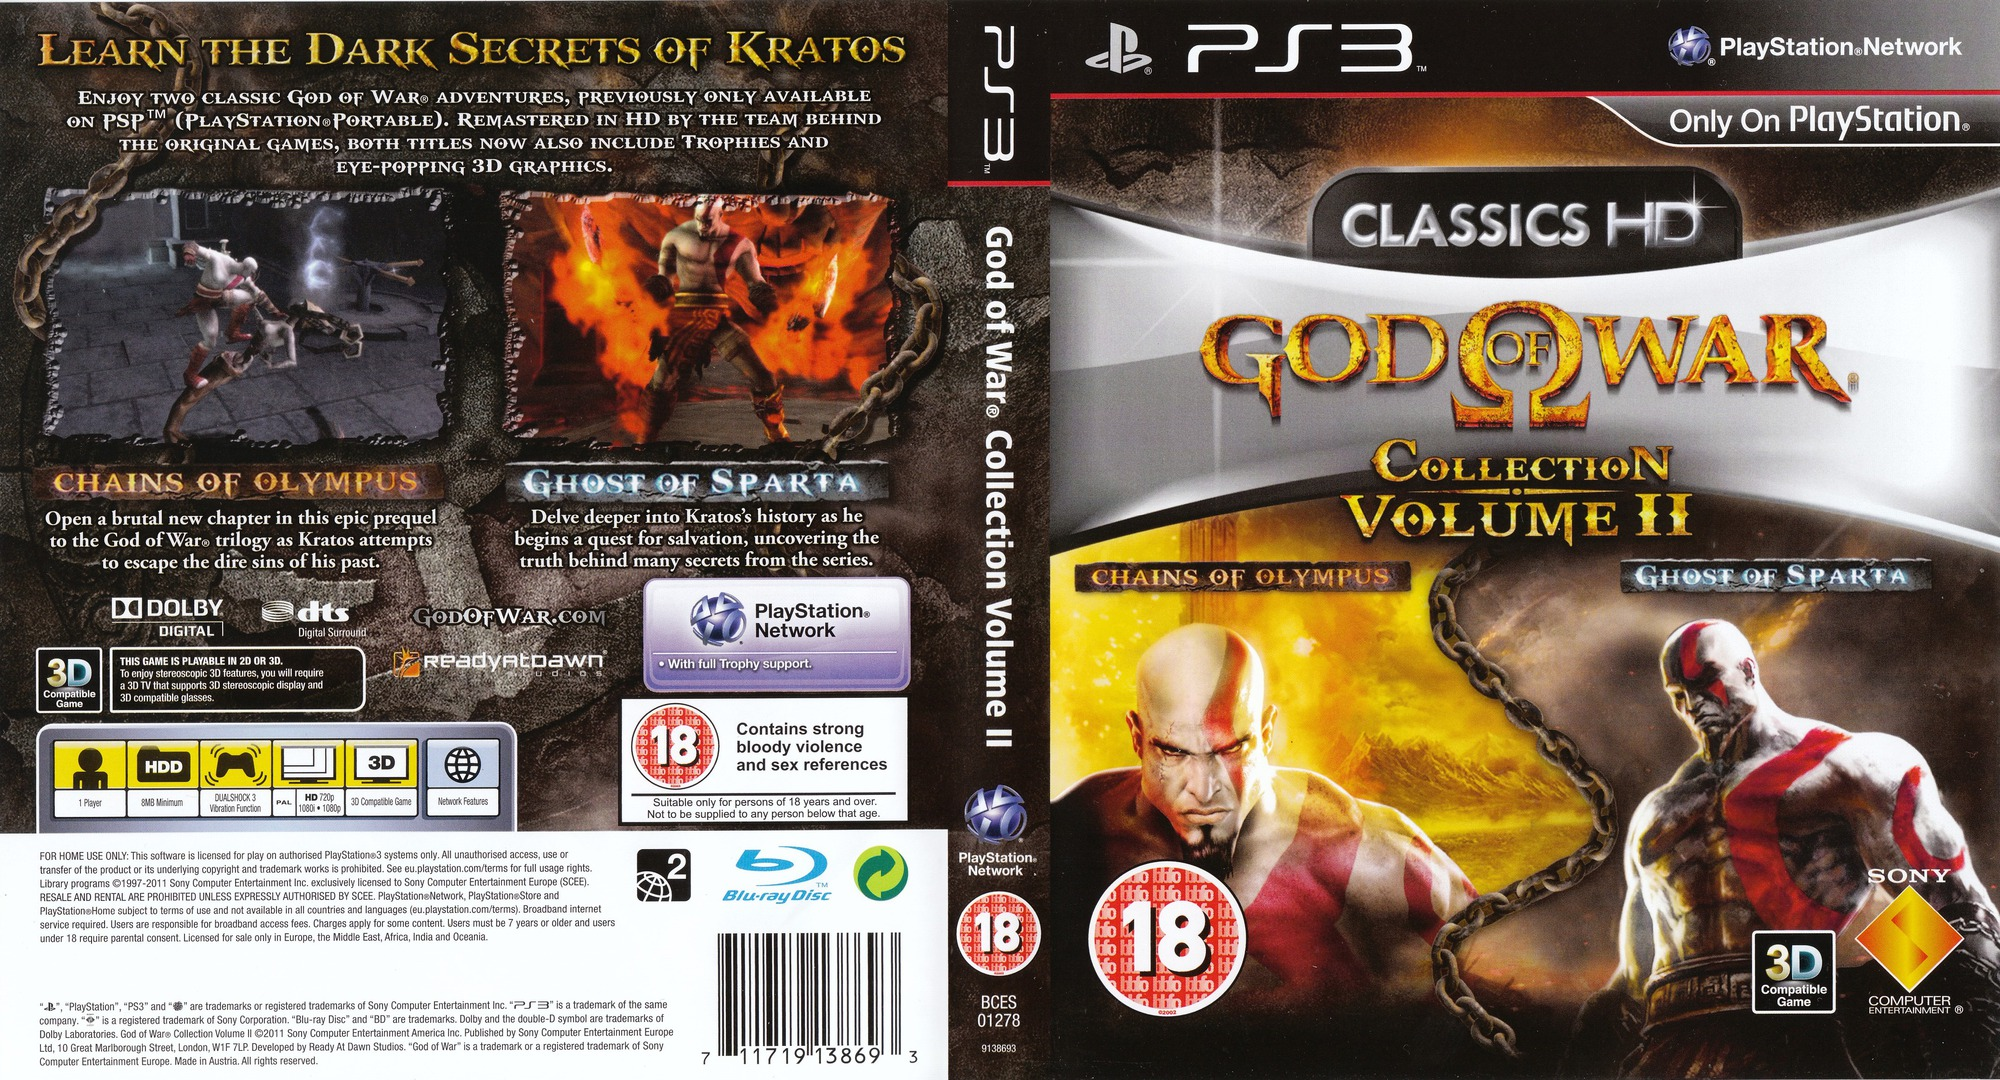 God of War Collection Volume II PS3 coverfullHQ (BCES01278)